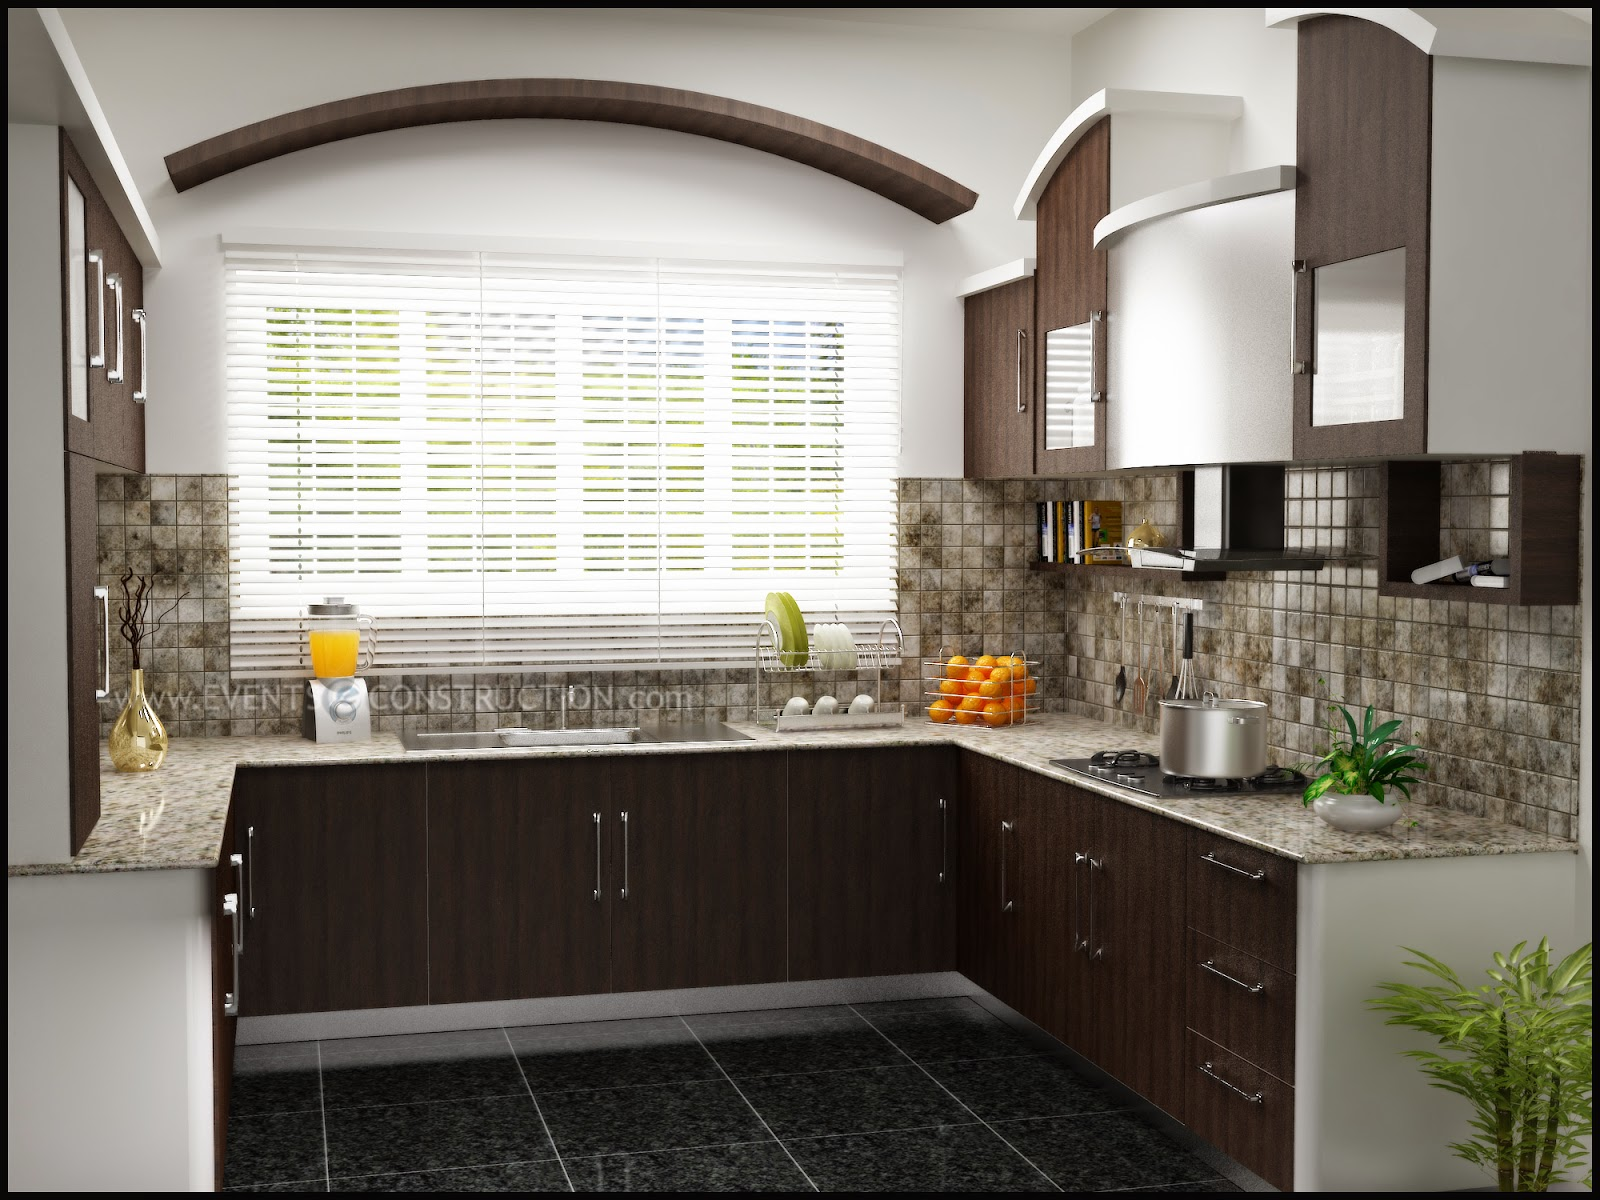 Evens Construction Pvt Ltd Simple Kerala Kitchen Interior Designs